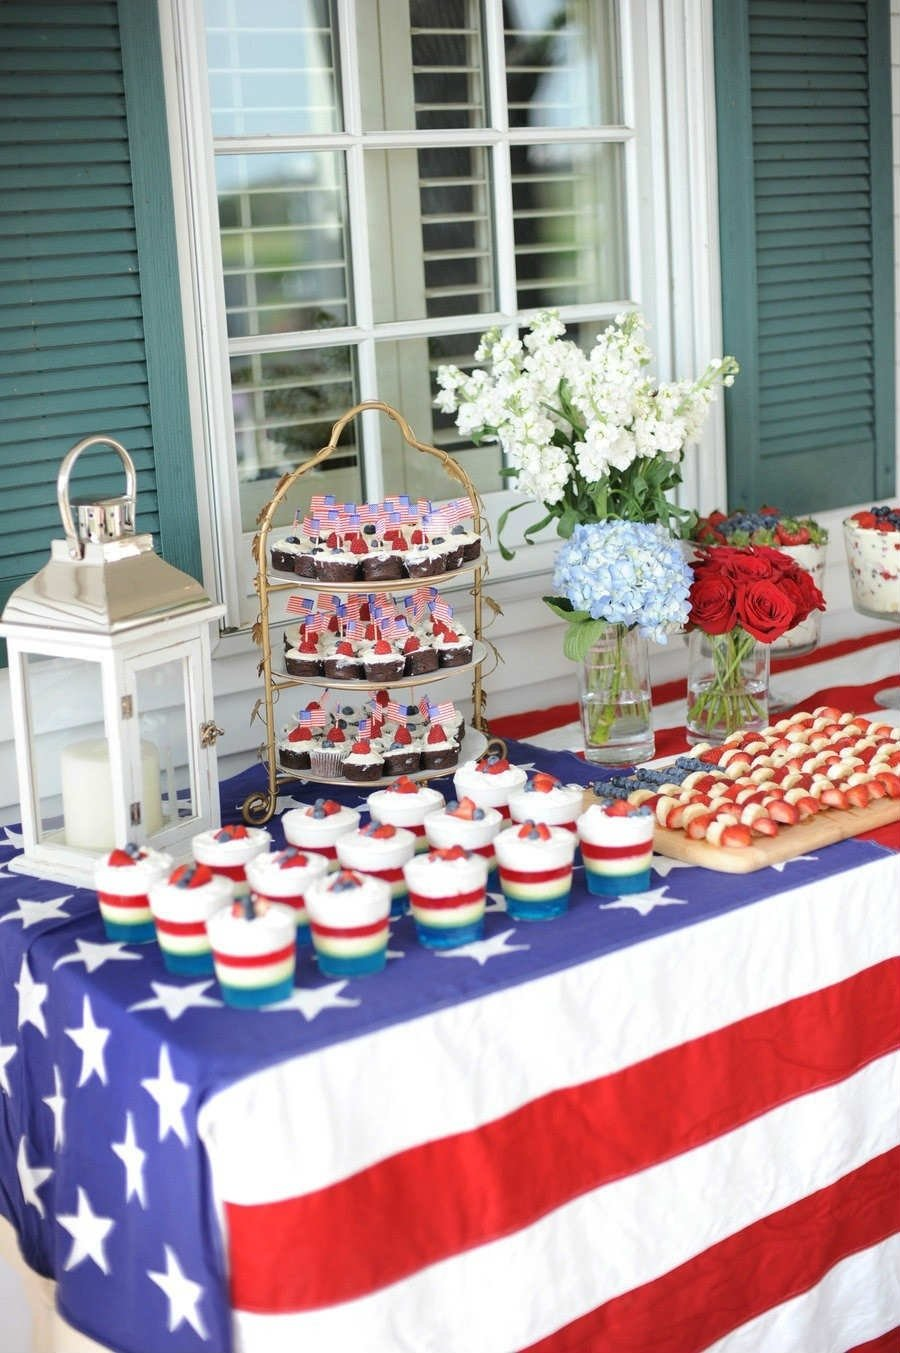 10 fourth of july decoration ideas - tinyme blog